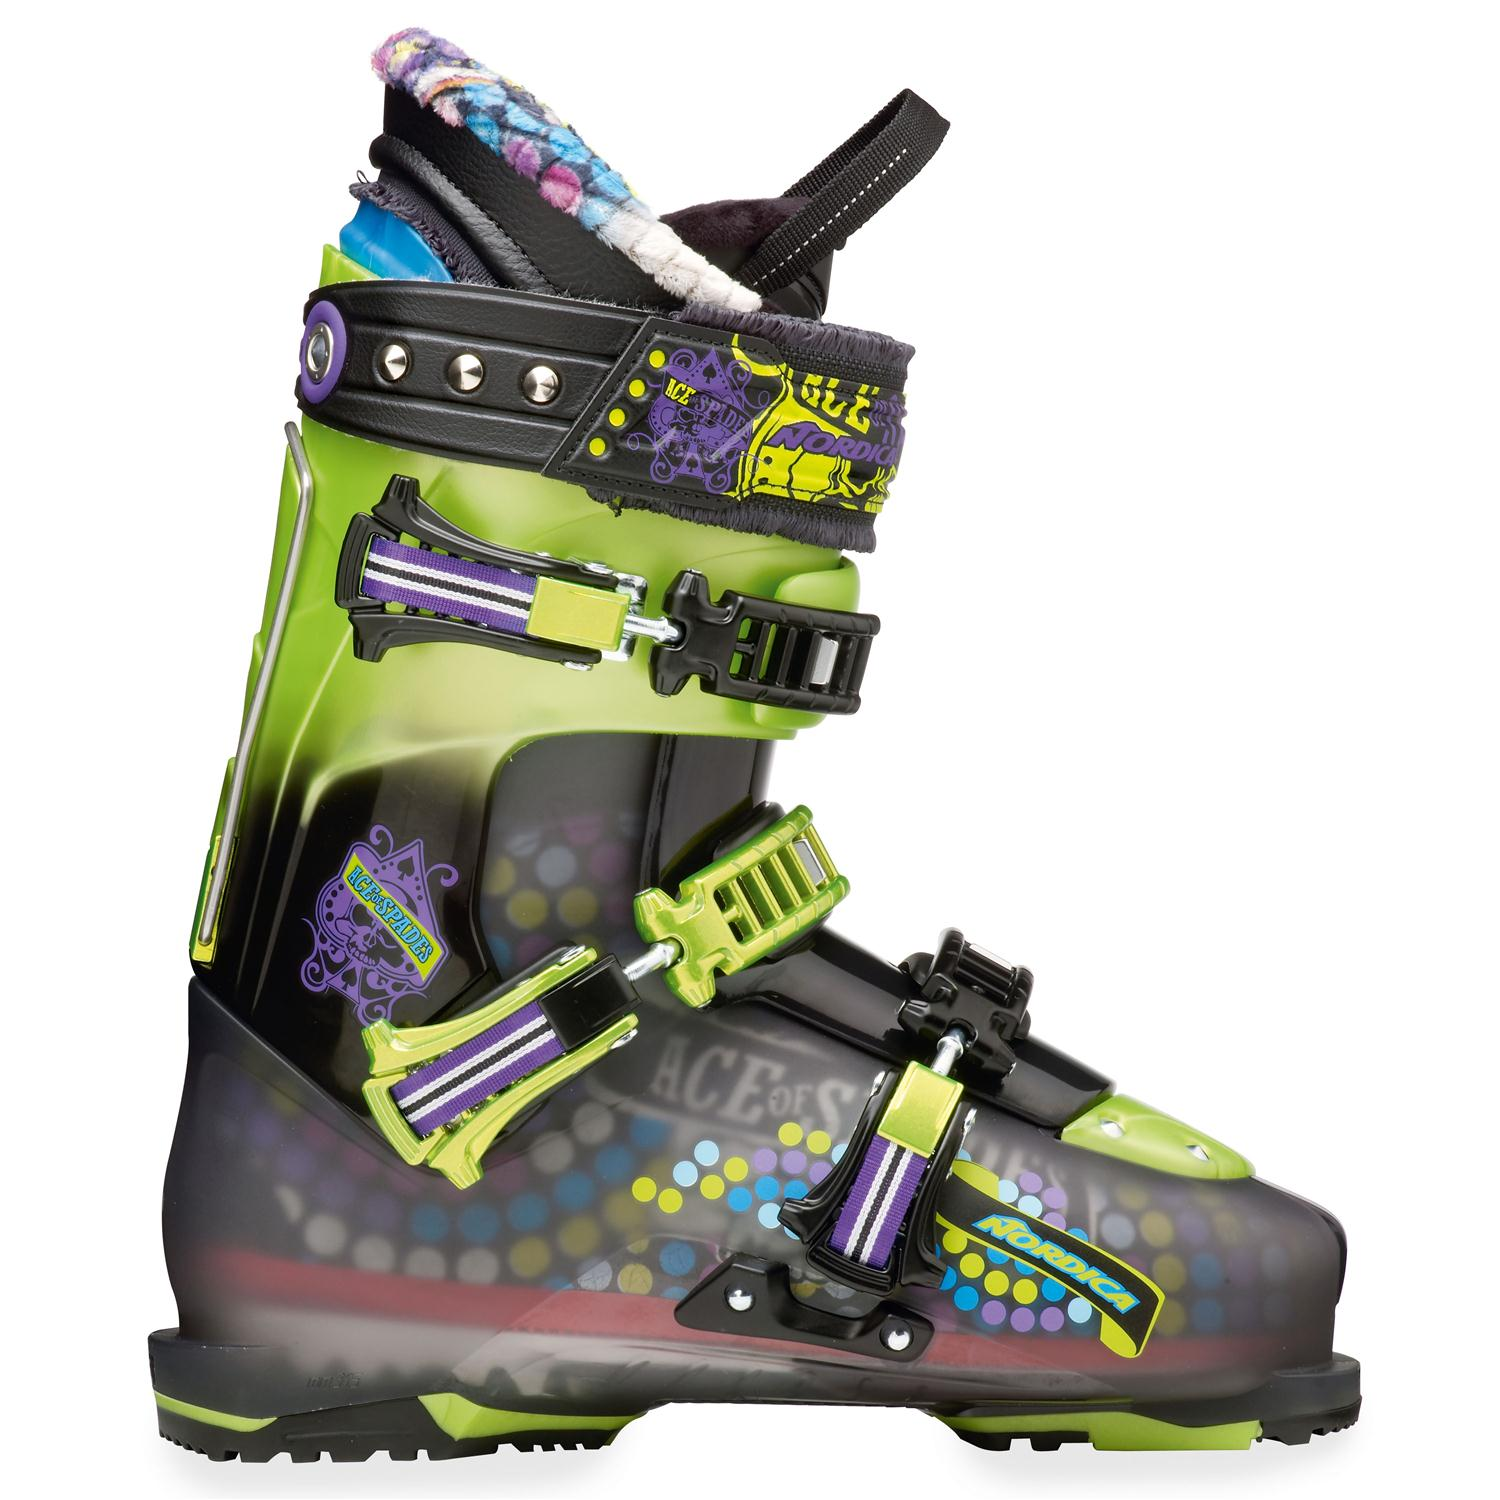 nordica ace of spades ski 2013 review